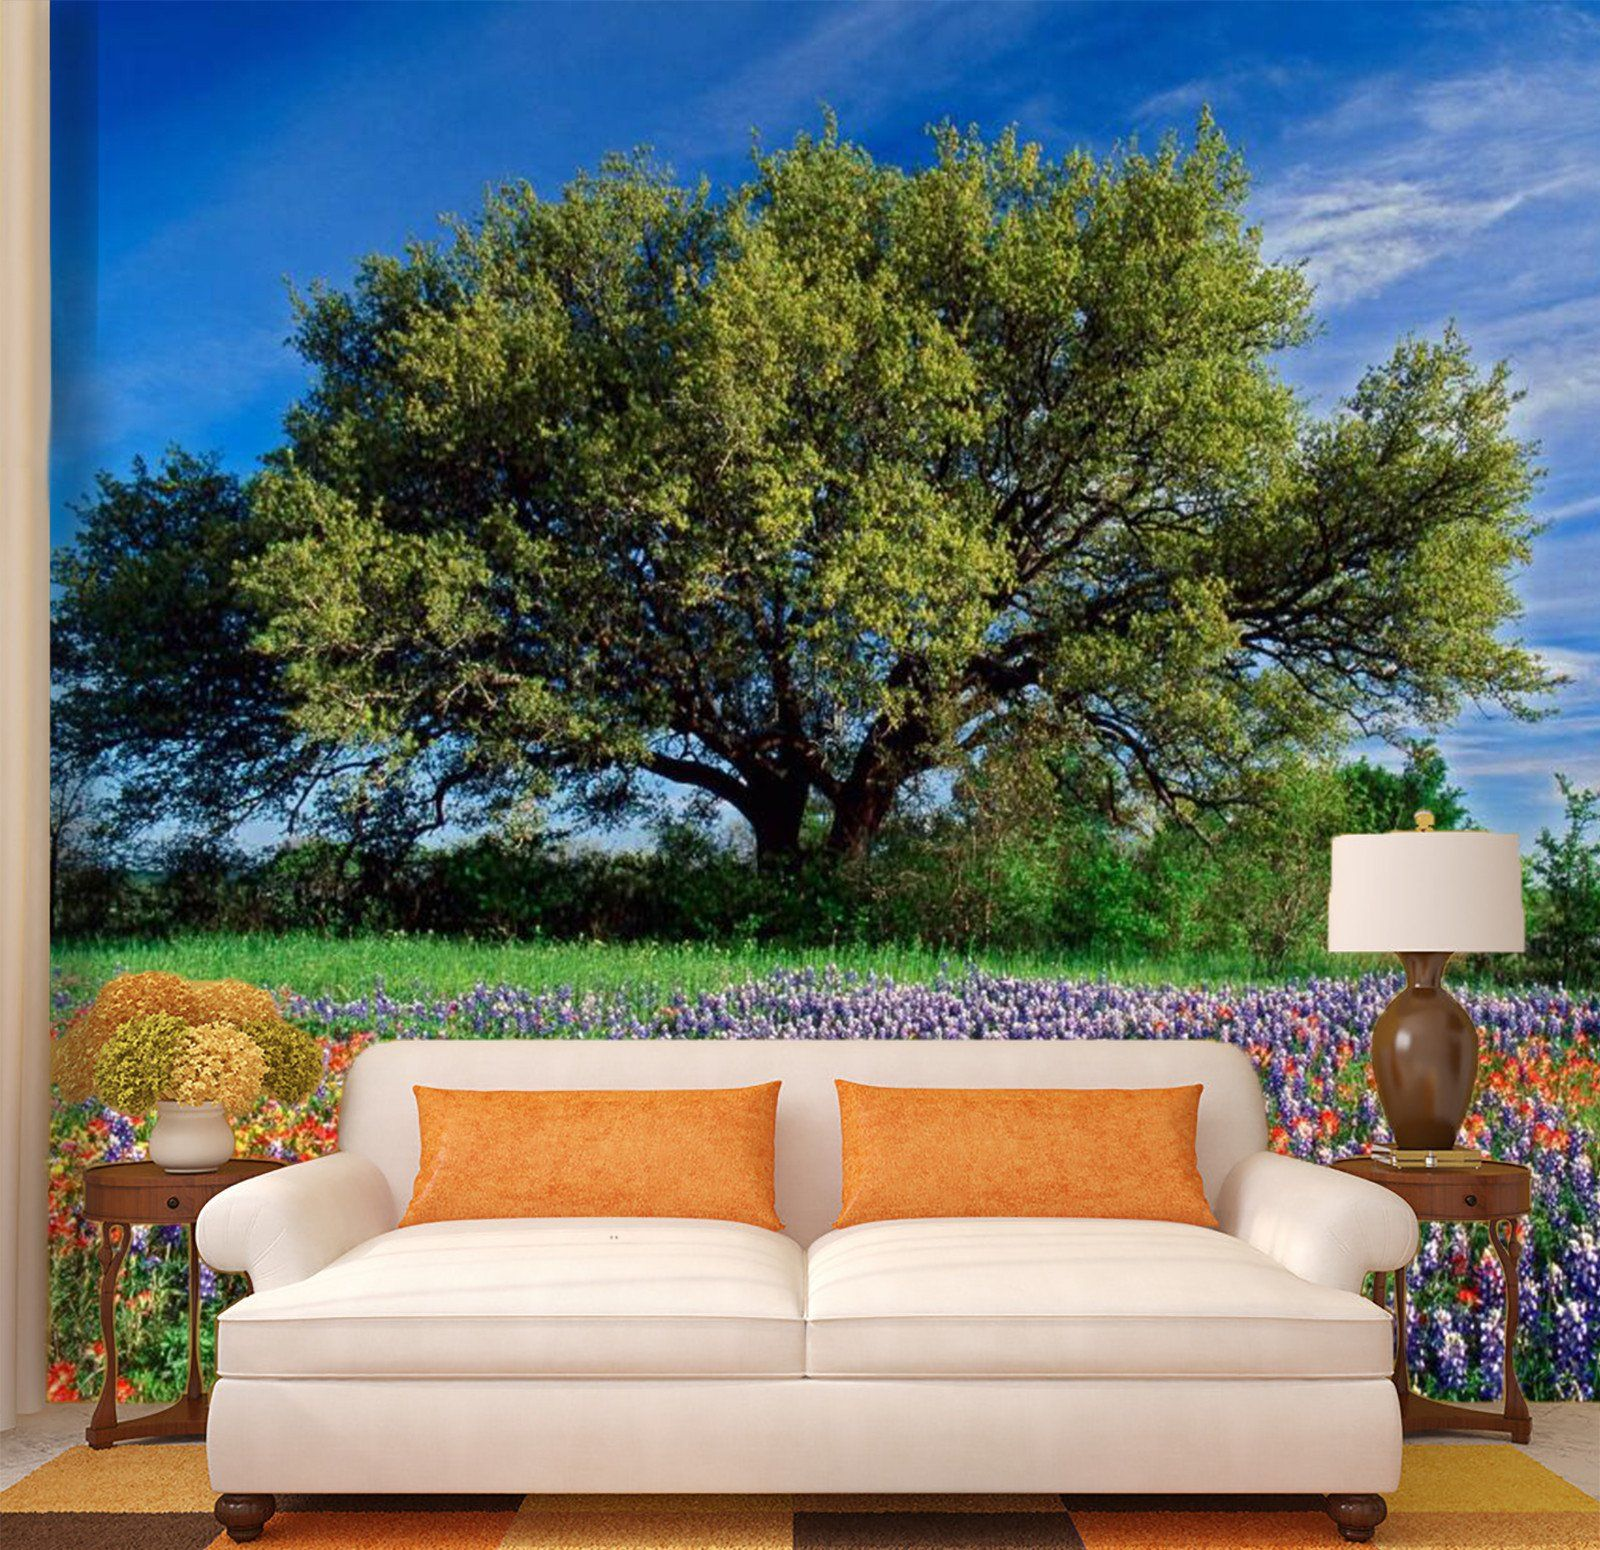 Big Green Tree With Lavender 3 Wallpaper AJ Wallpaper 1